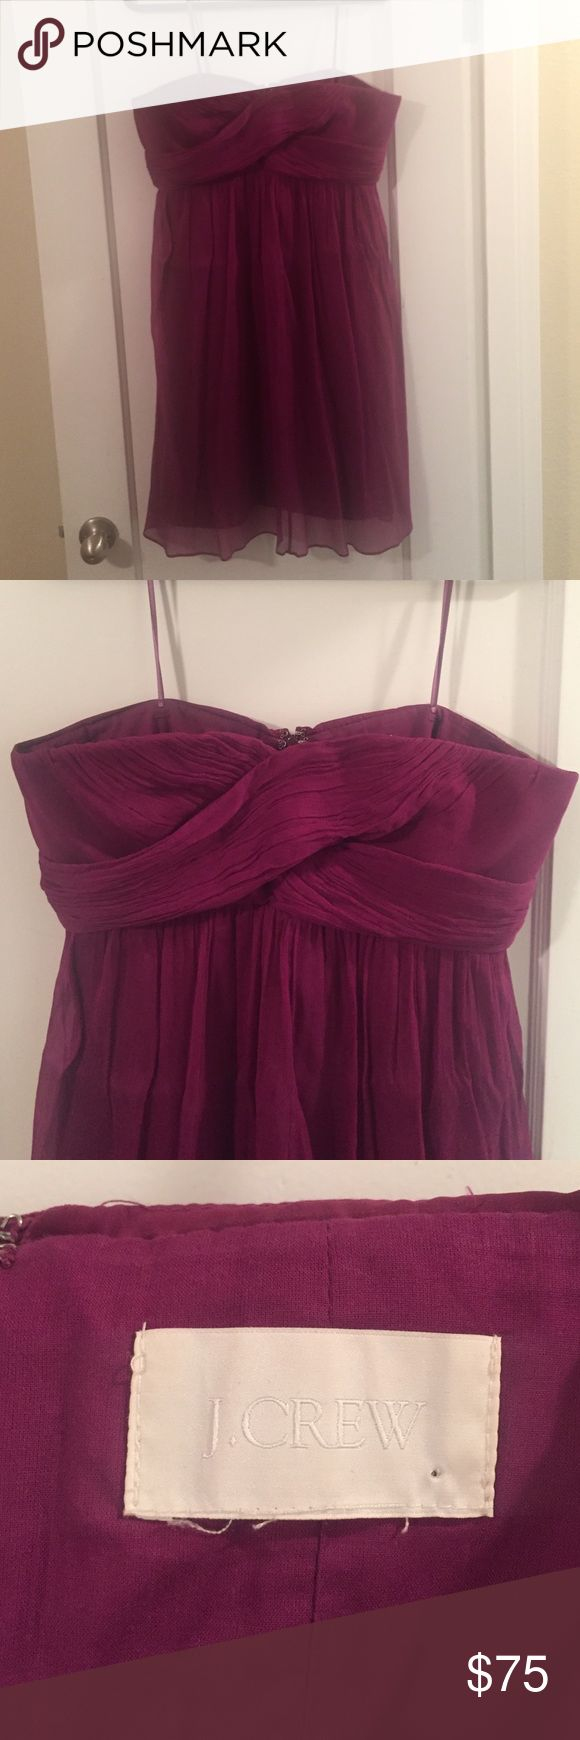 J. Crew bridesmaid dress Fuchsia, strapless, bridesmaid dress. Wore it once! (Go figure) it has boning on the sides to keep it up. Falls right at knee (I'm 5'11). Looked great at the wedding! J. Crew Dresses Strapless